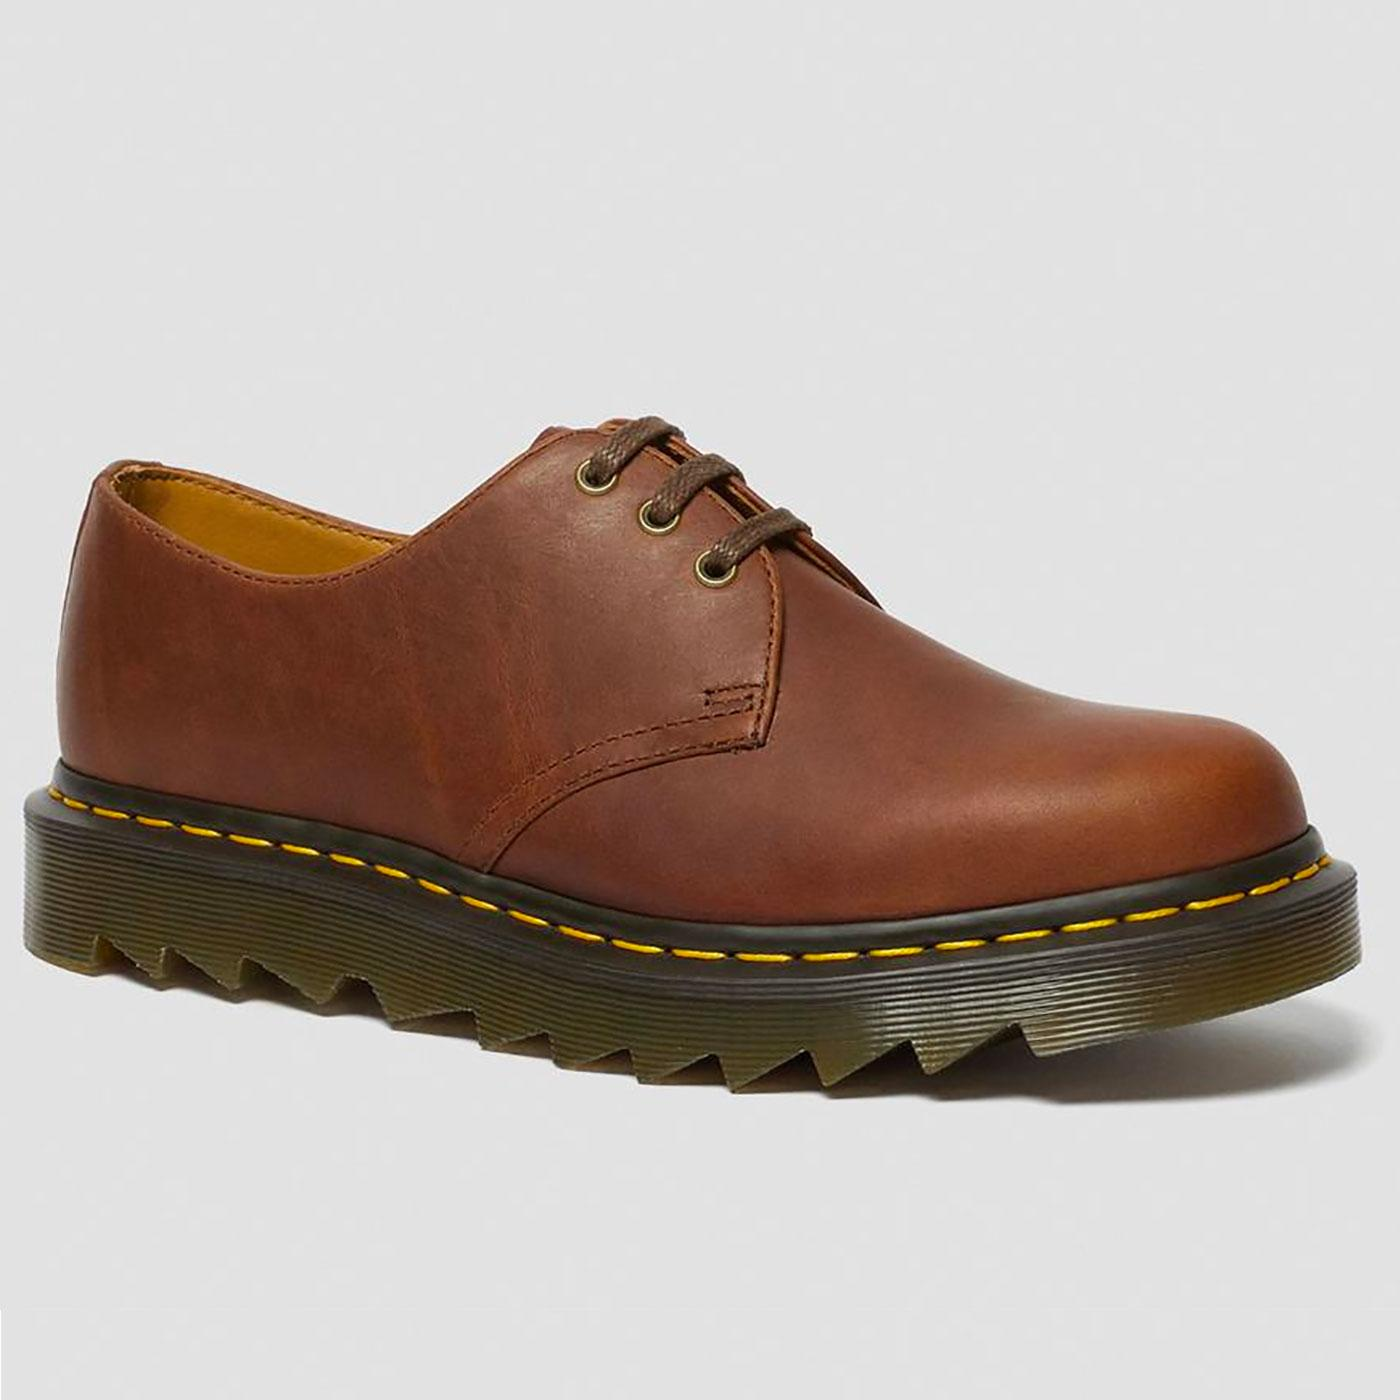 DR MARTENS 1461 Ziggy 3 Eyelet Shoes (Tan Luxor)